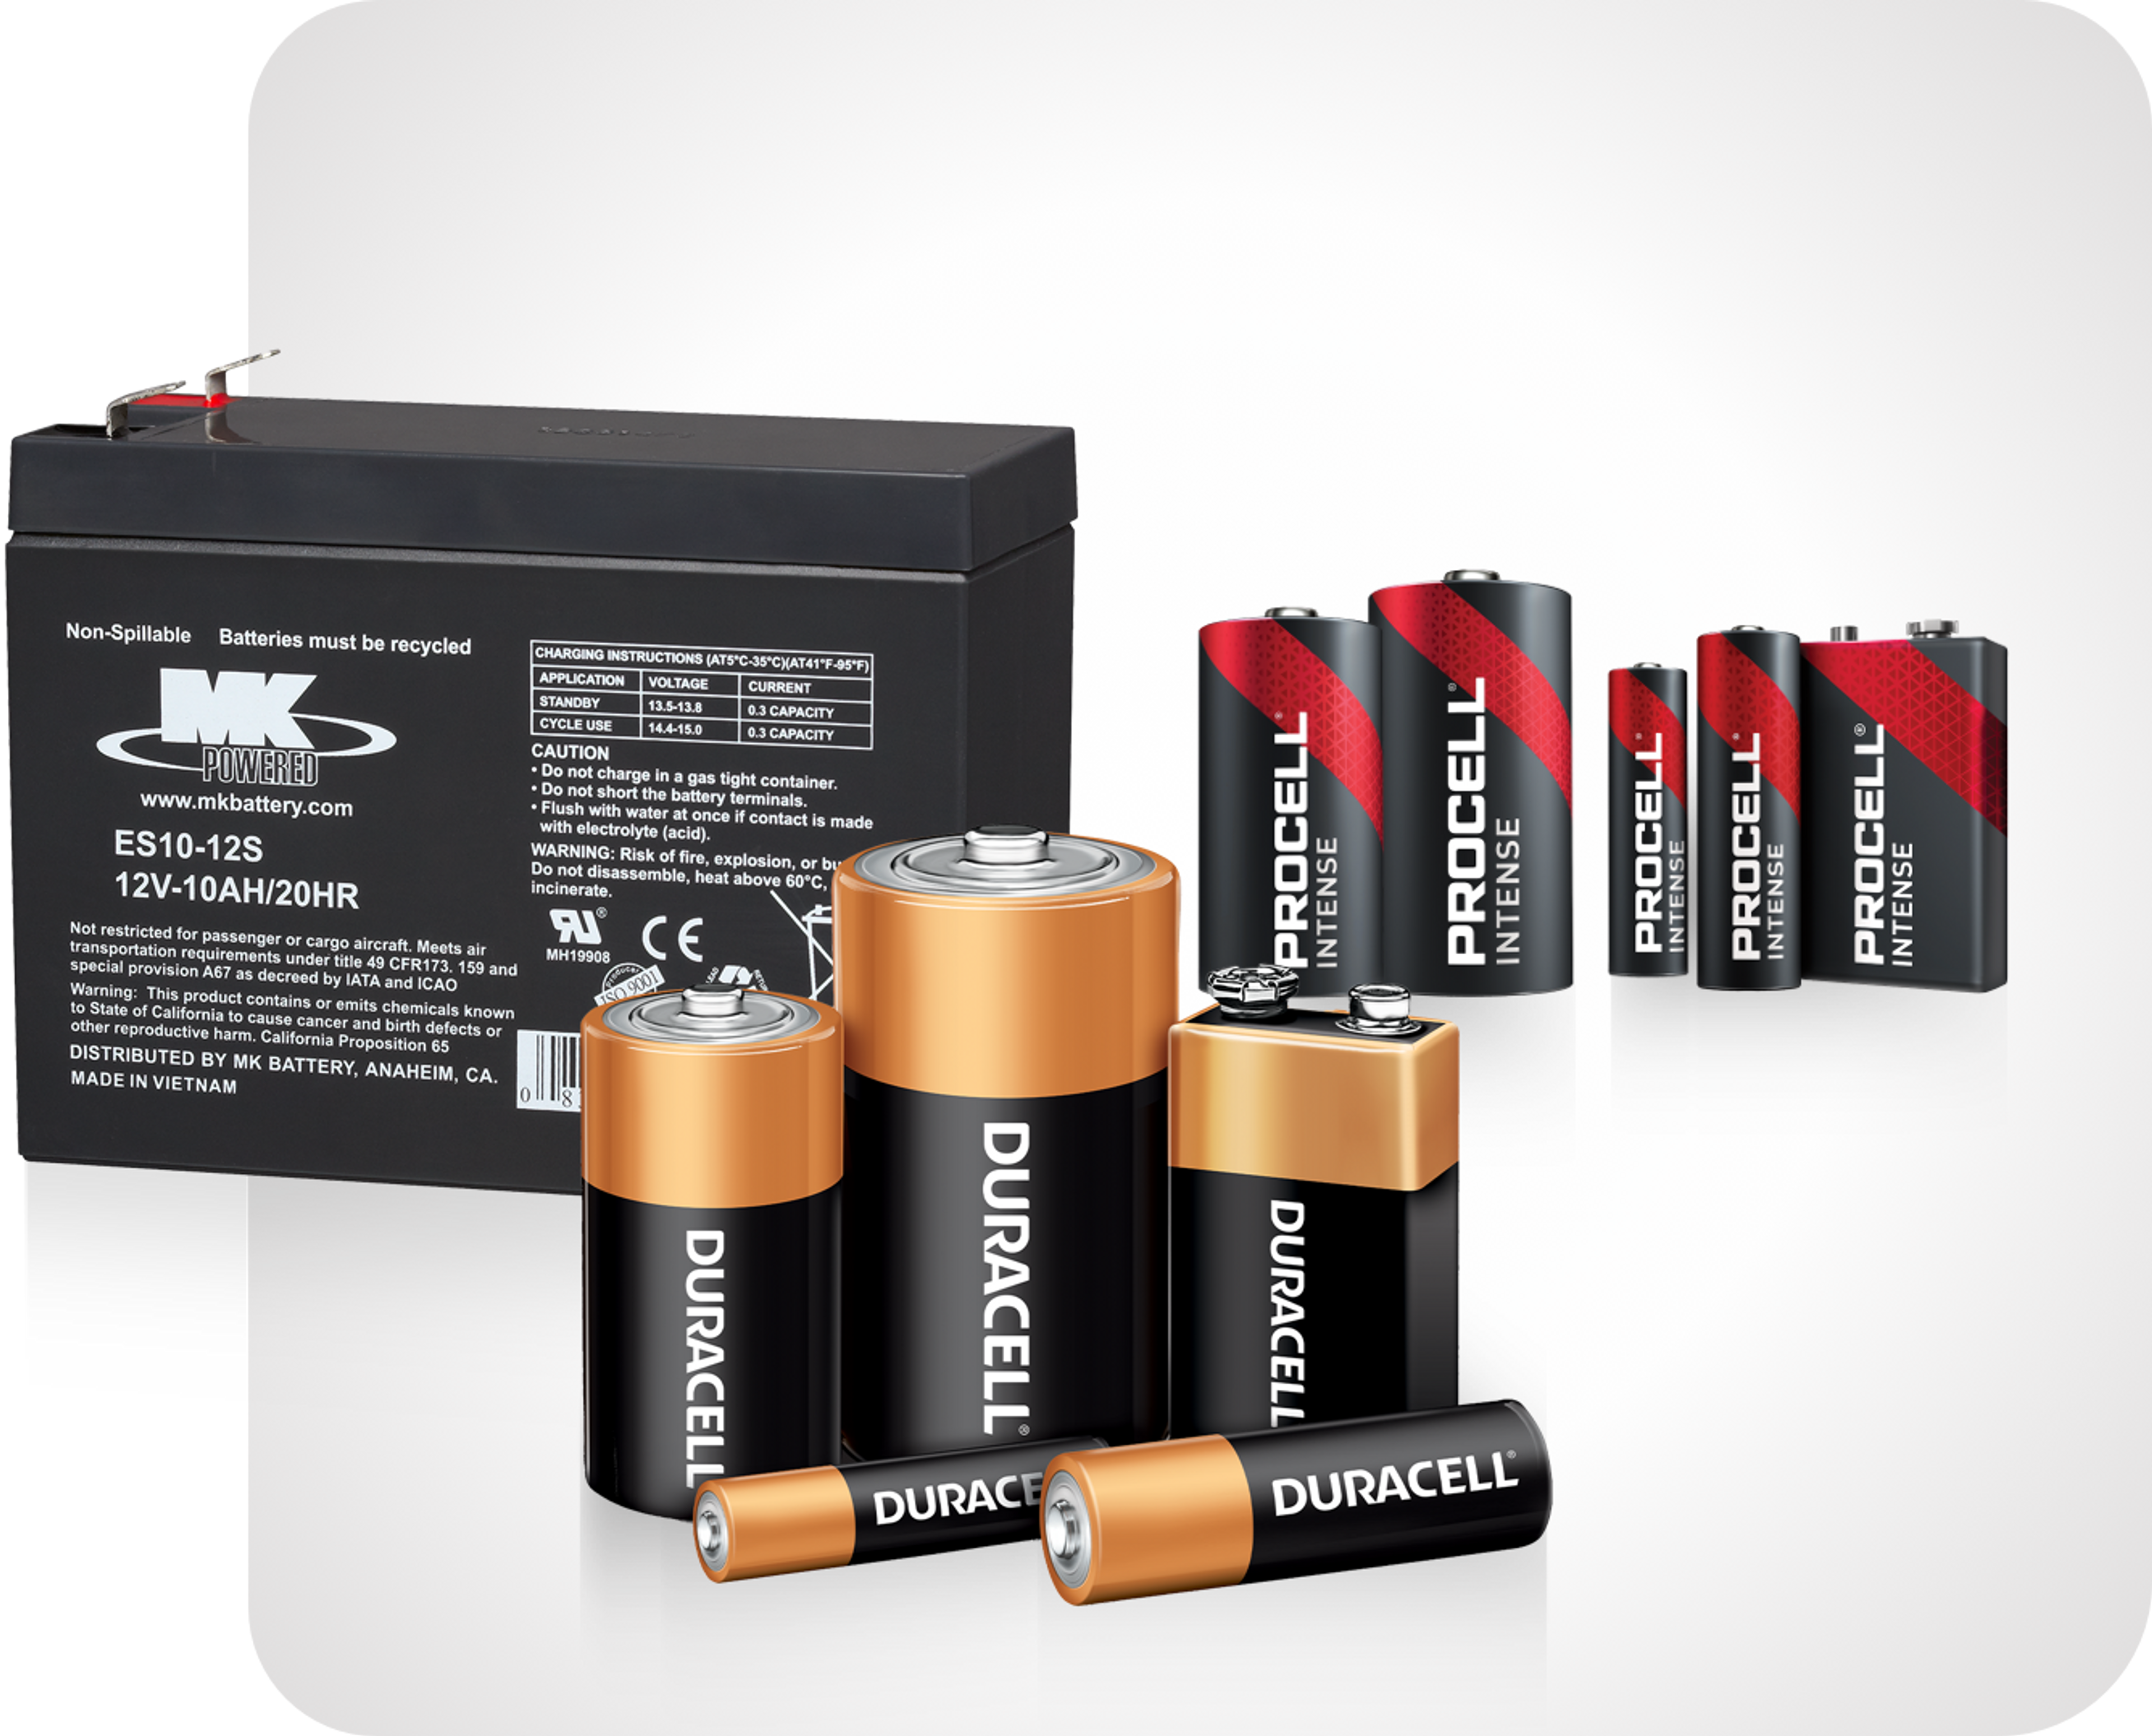 Picture of various batteriesn inclucing duracell, procell and East Penn car battery